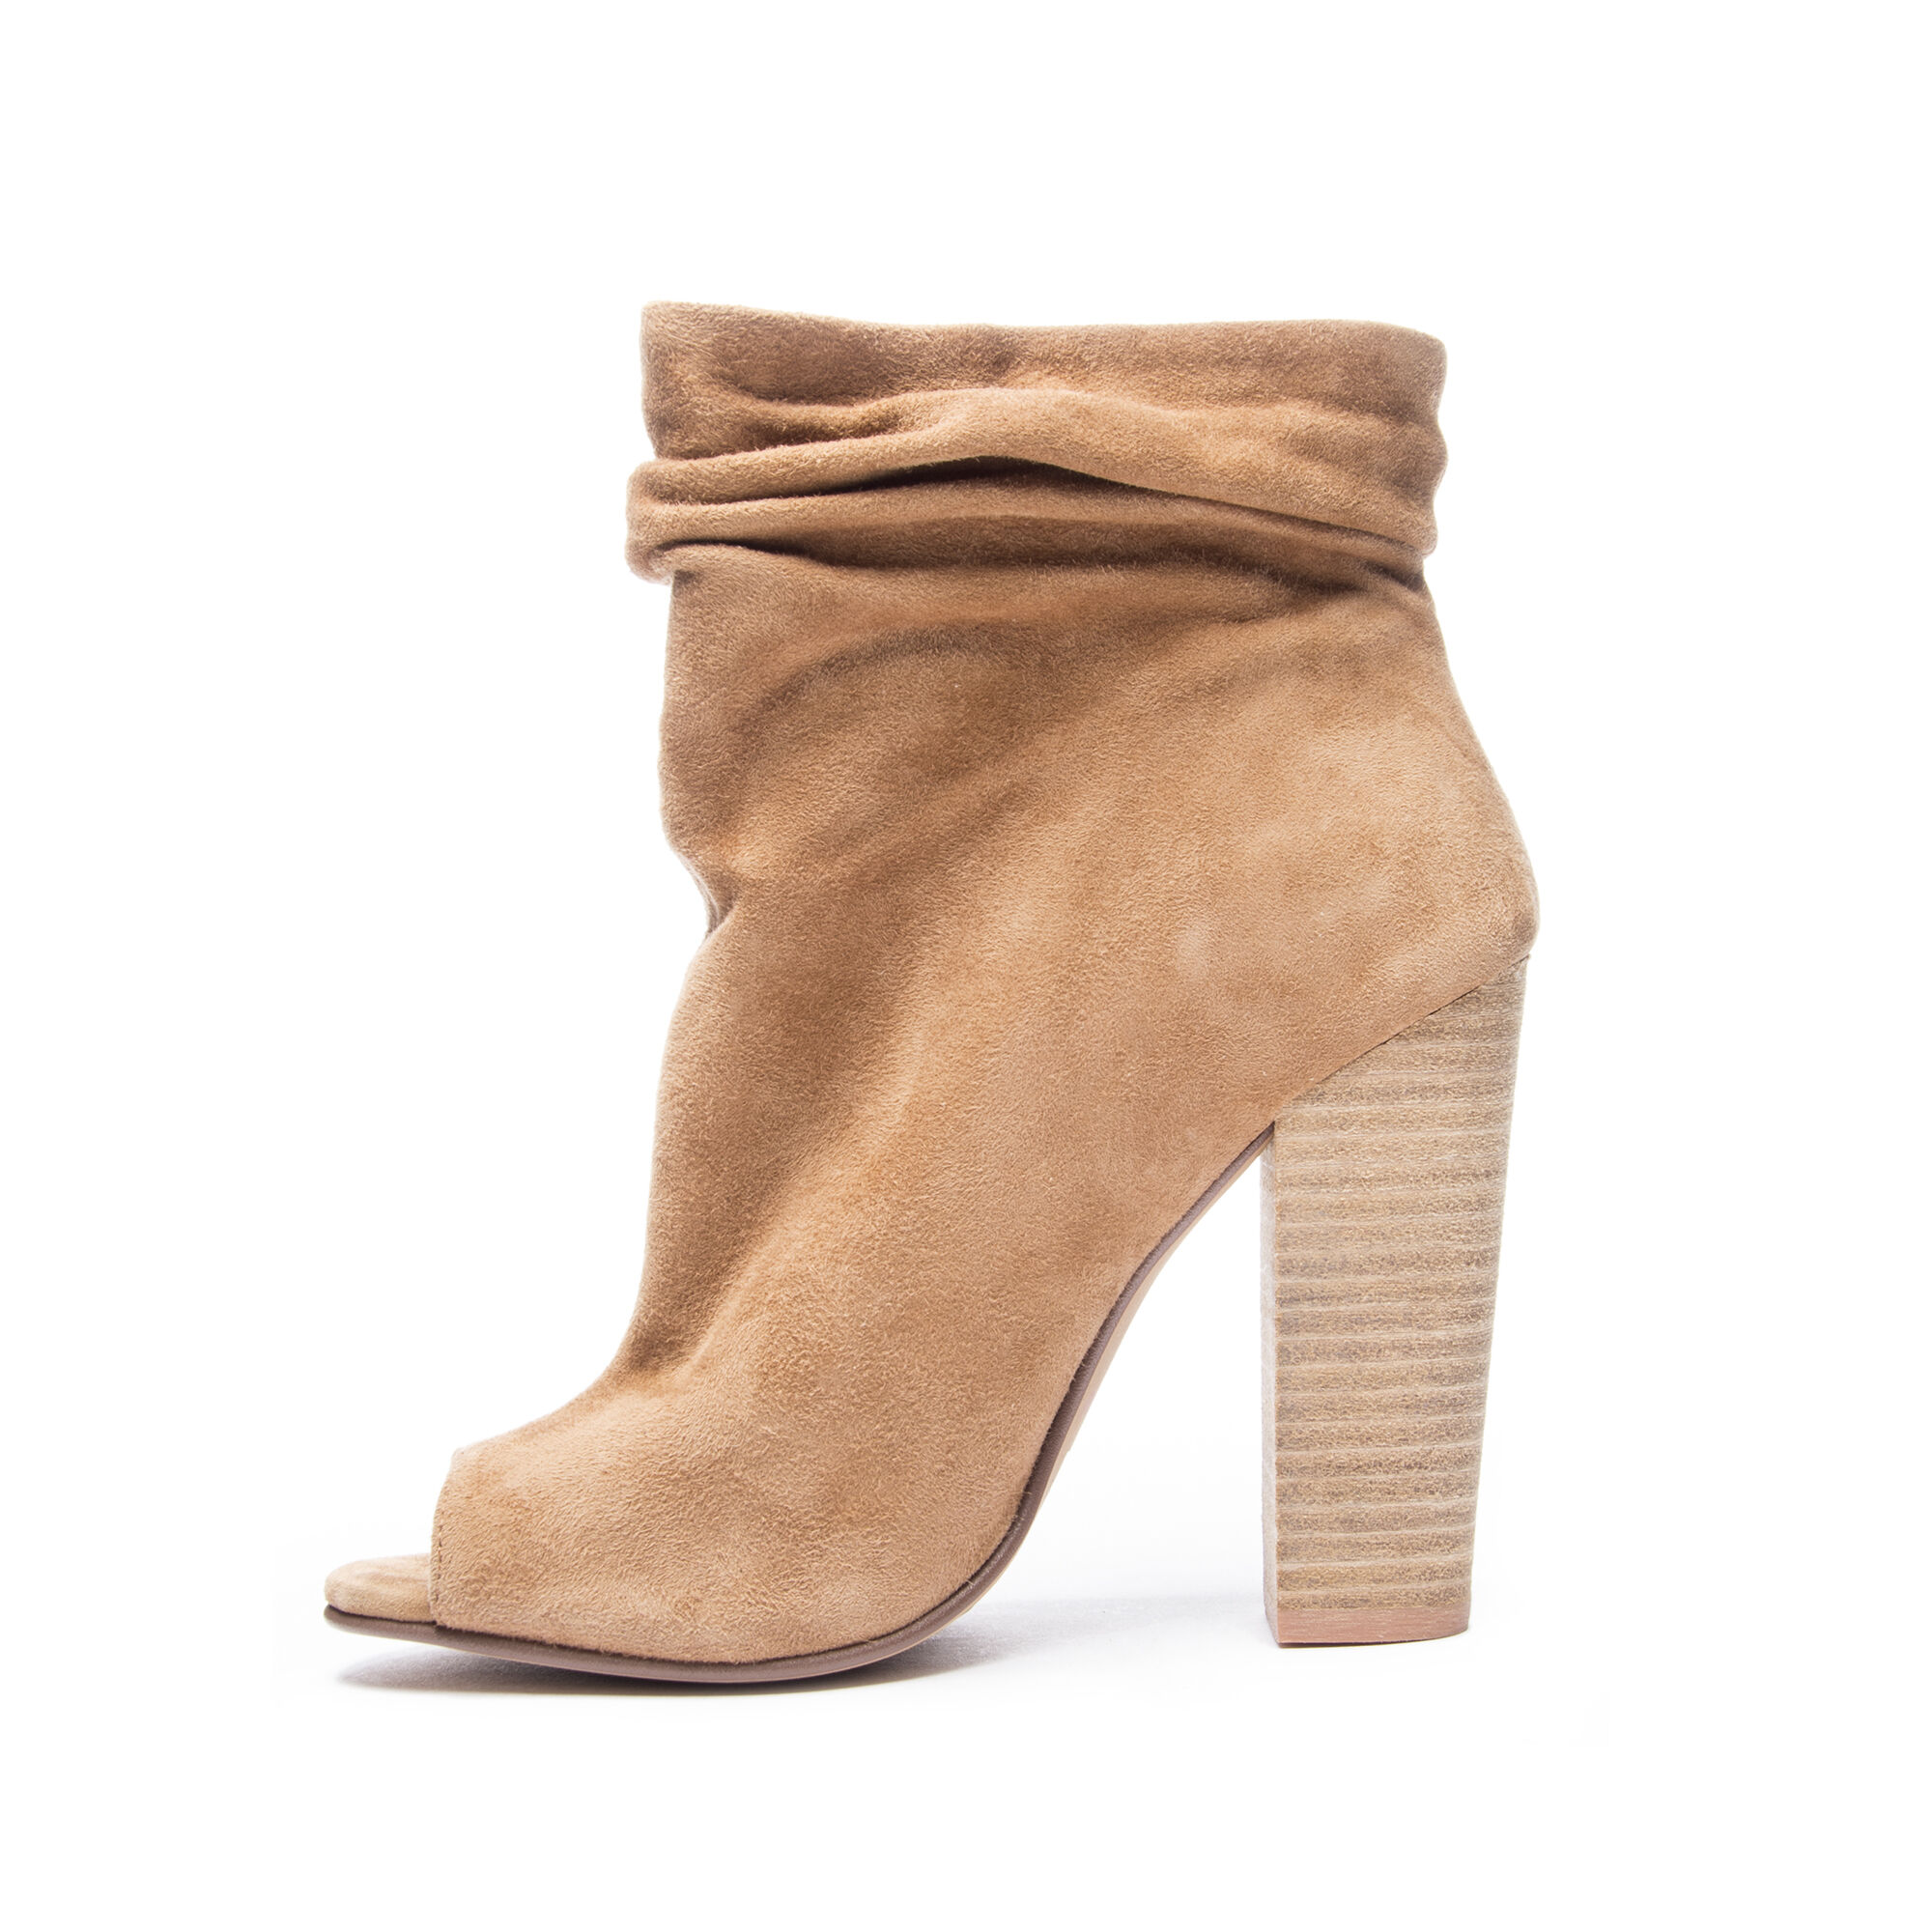 6acd1dbf2aa Laurel -Slouch Peep Toe Suede Ankle Bootie | Chinese Laundry